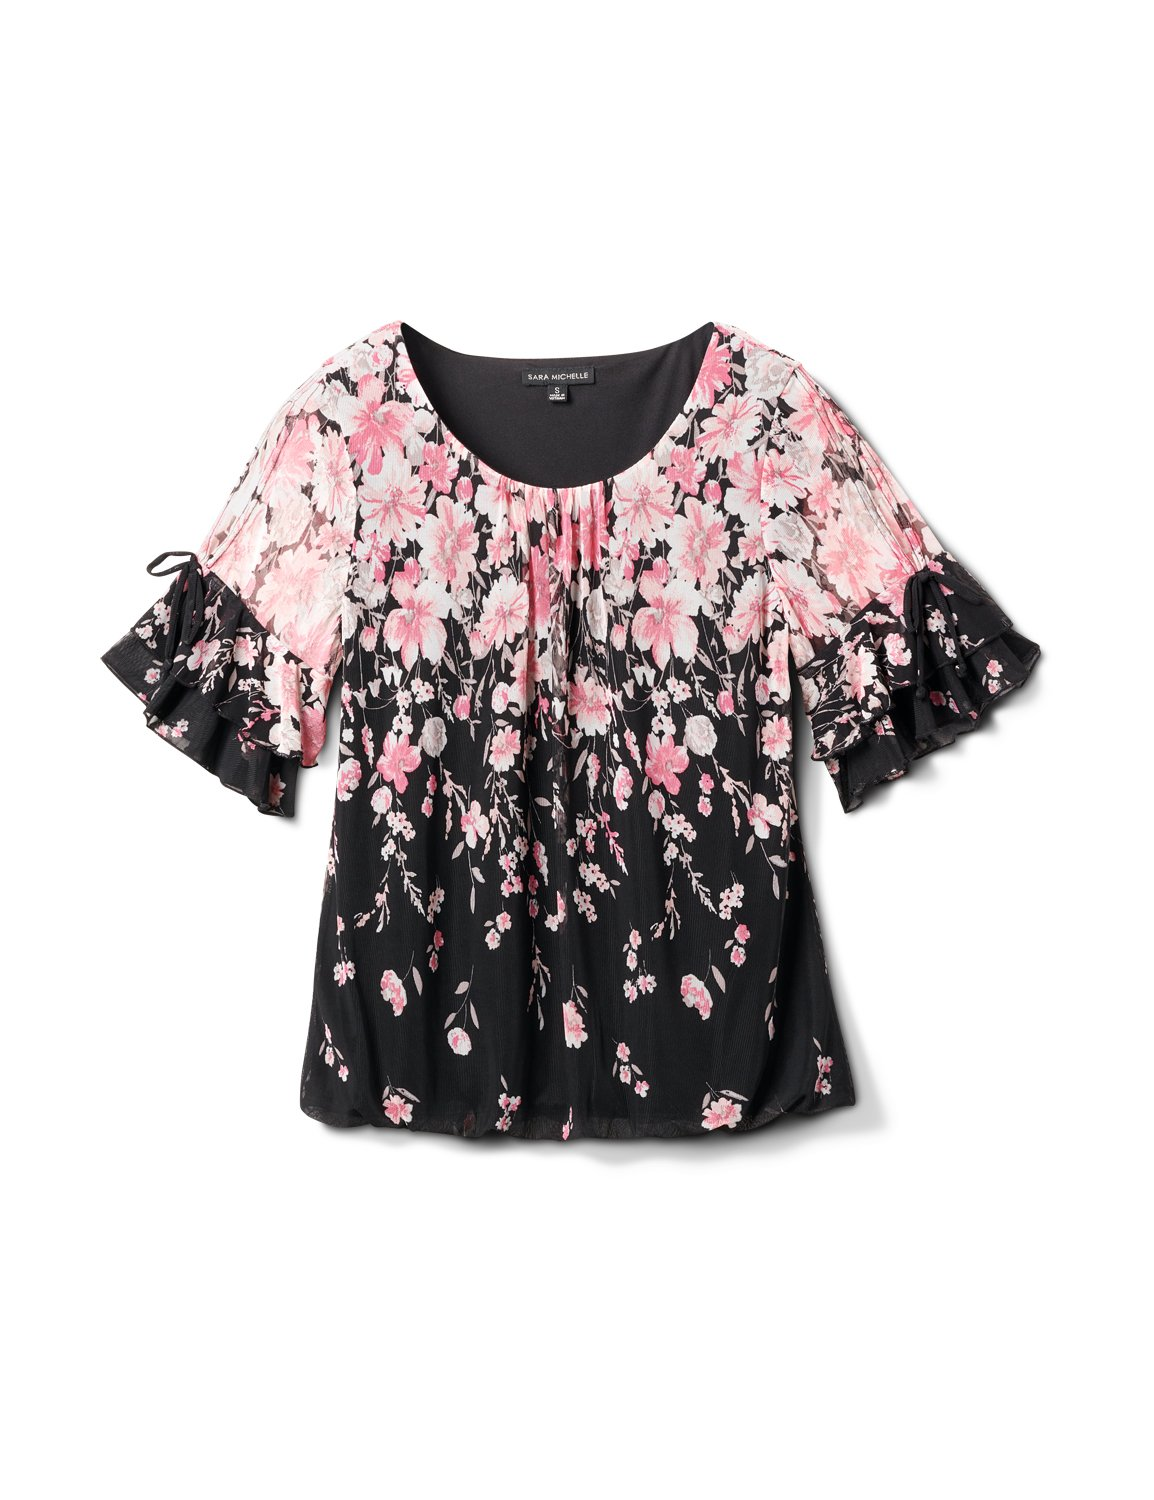 Placed Floral Bubble Hem Blouse -Black/Blush - Front